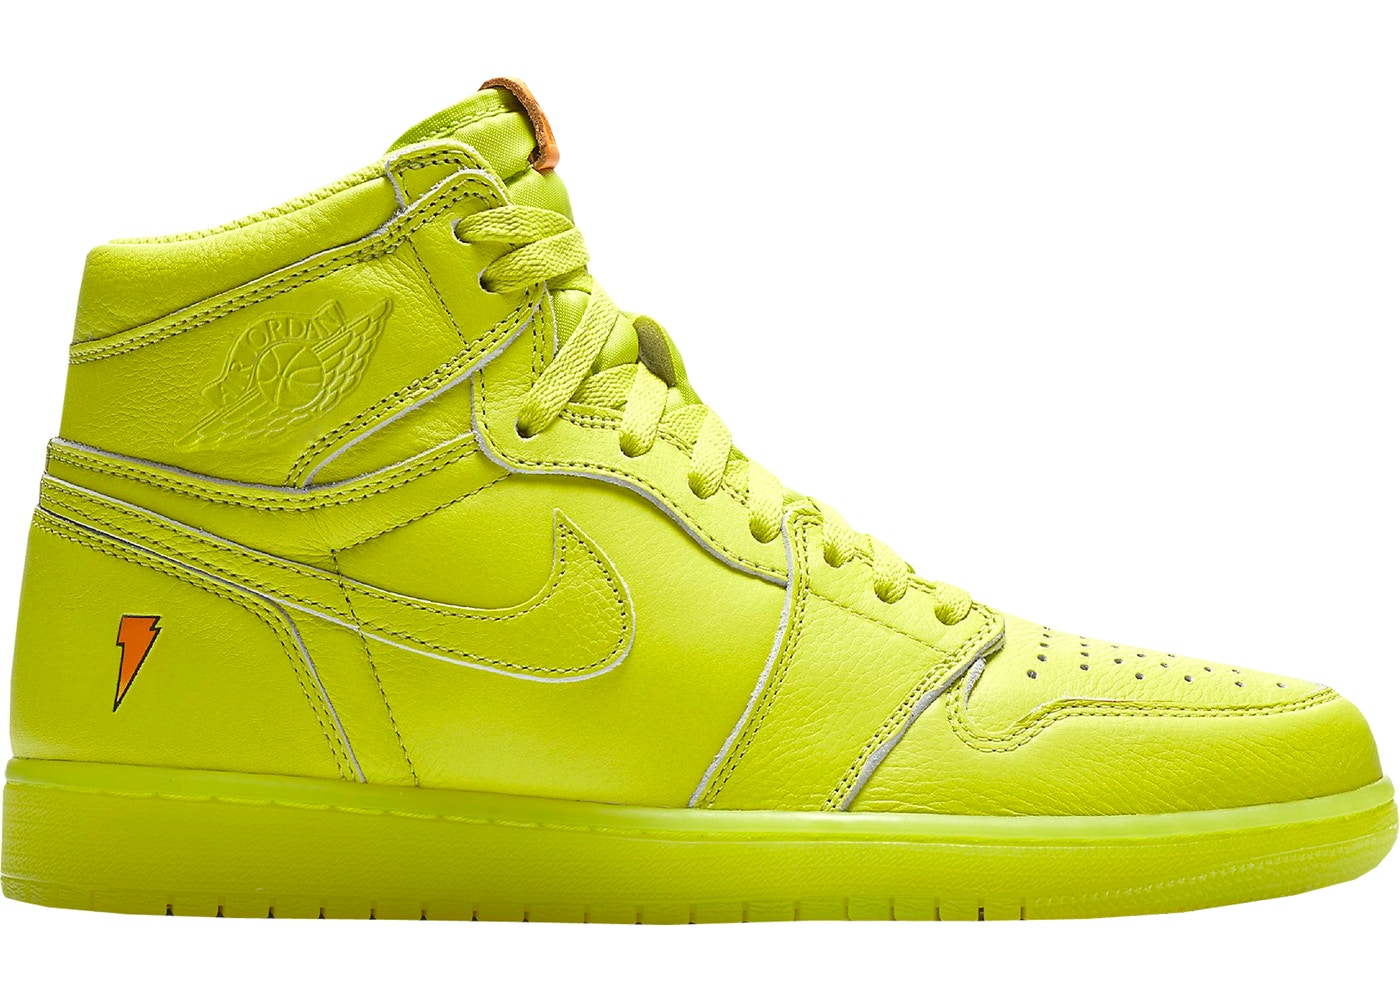 cheap for discount b1def d5c38 Jordan 1 Retro High Gatorade Cyber